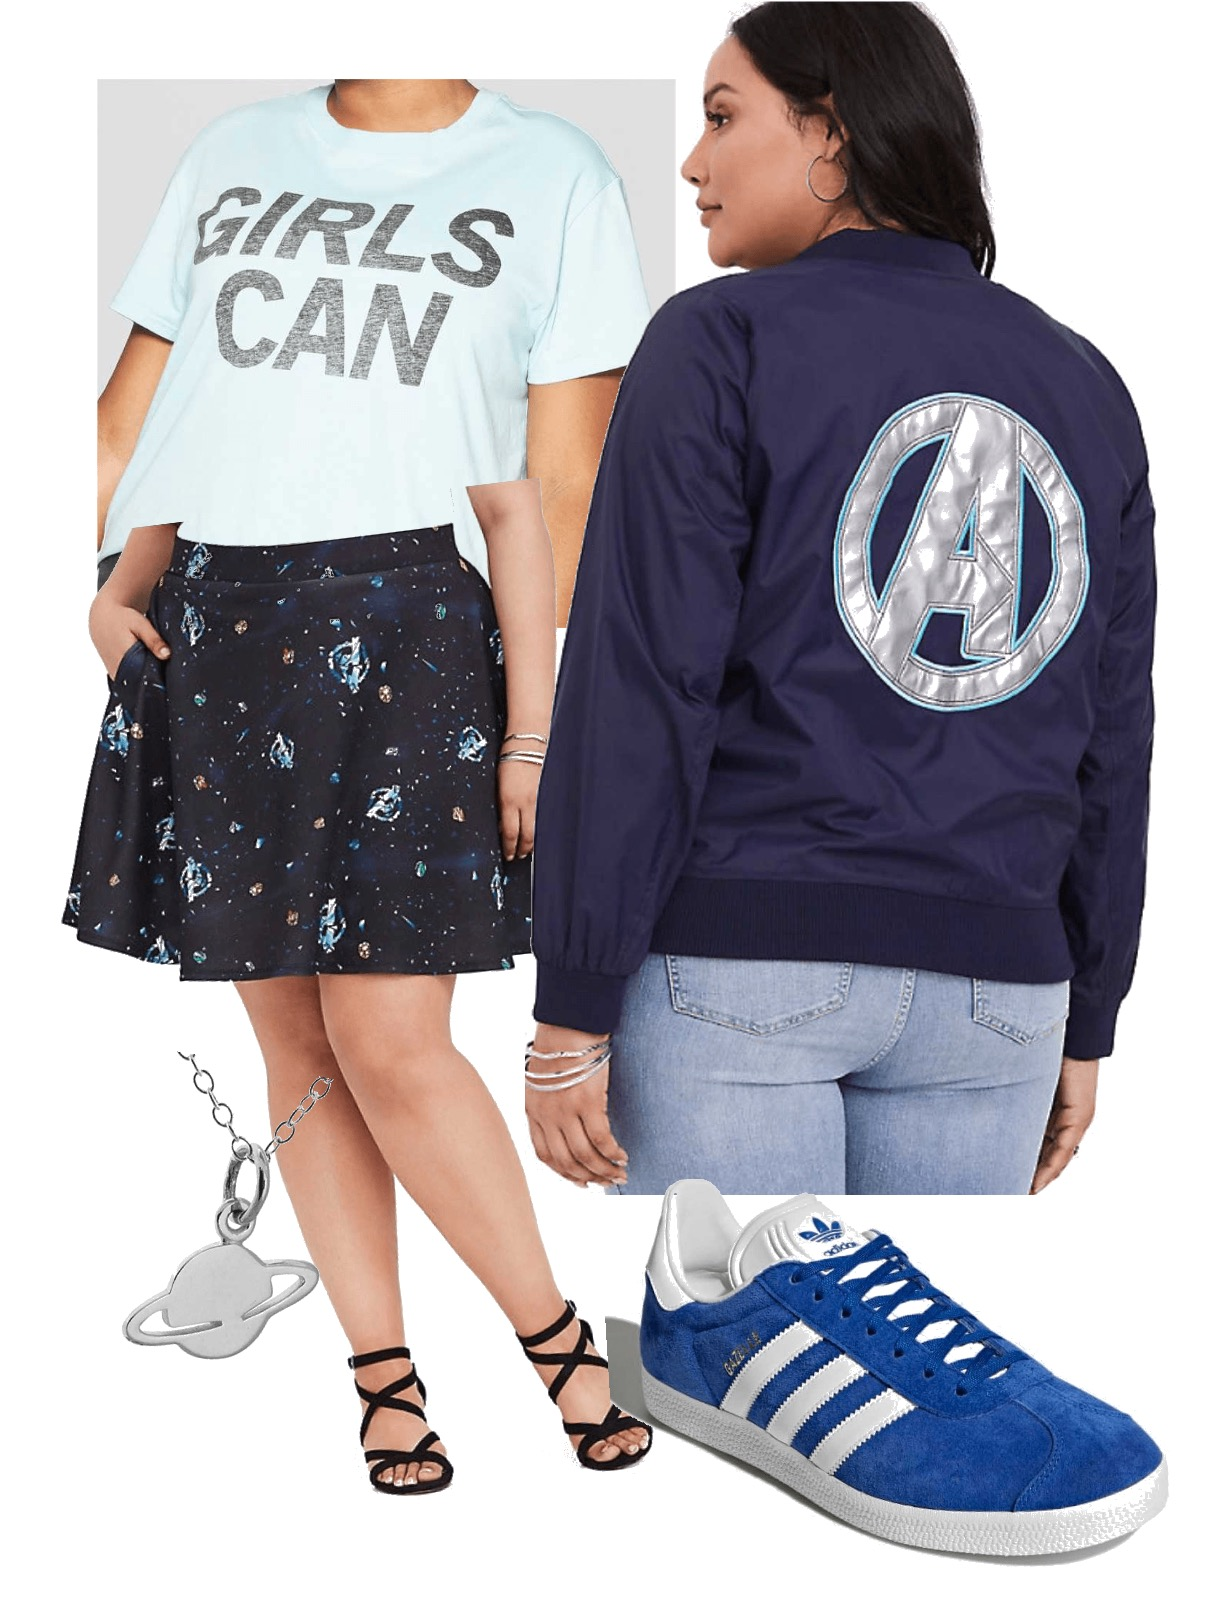 Girls Can shirt:  Target , Avengers  skirt  and  bomber jacket : Torrid, Gazelle  Adidas , Space necklace:  Amazon